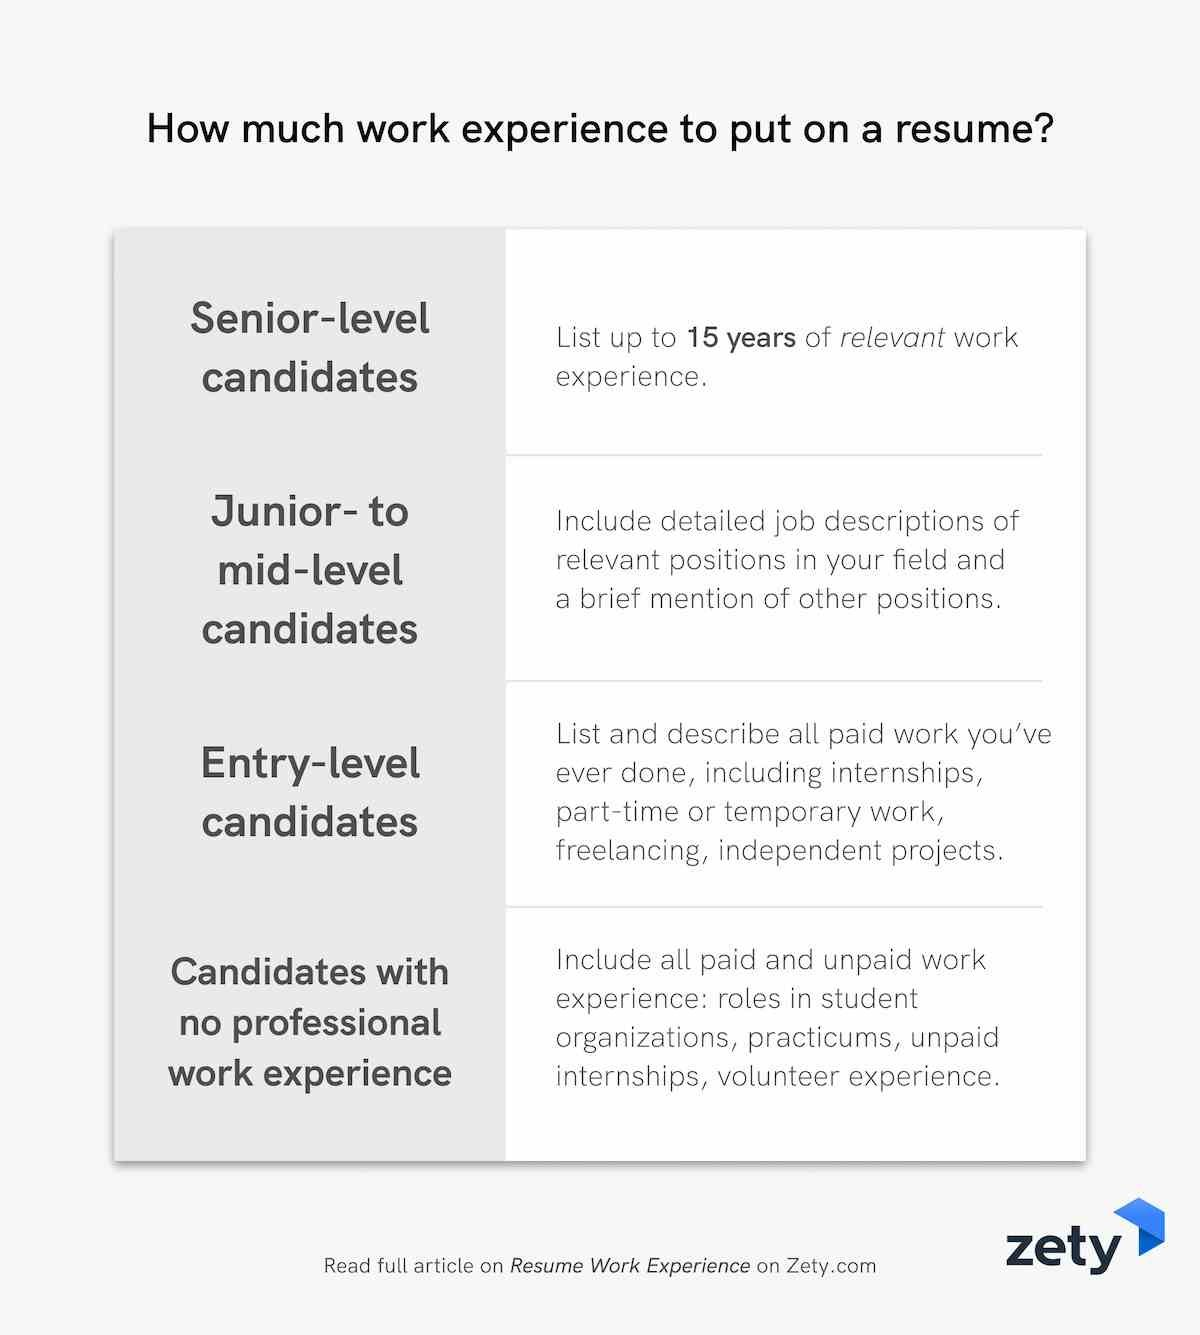 resume work experience history example job descriptions good description for much to put Resume Good Description For Resume